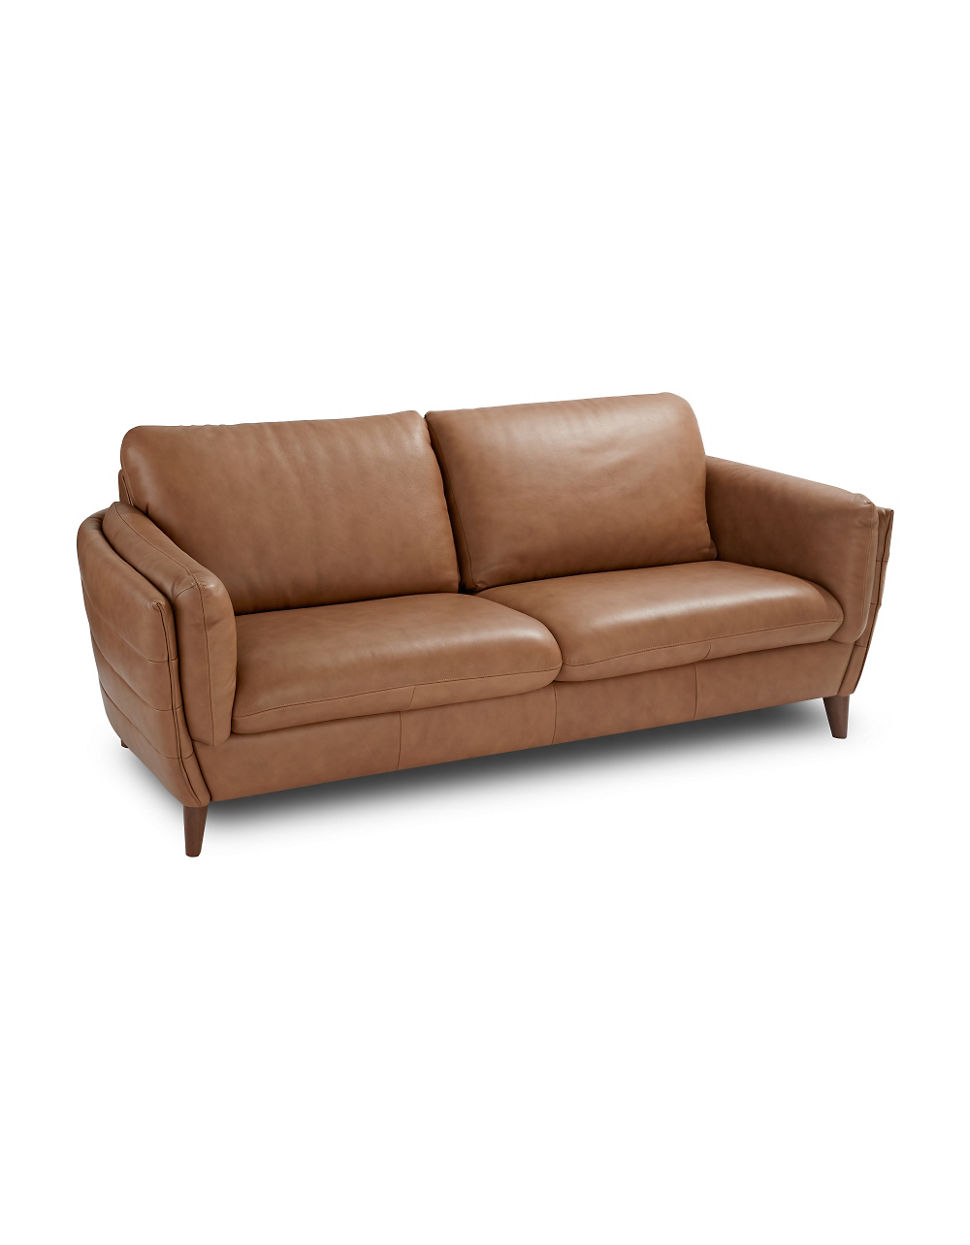 Sears natuzzi leather sofa sears natuzzi sectional sofa outdoor furniture leather 16383 thesofa - Sofas natuzzi ...